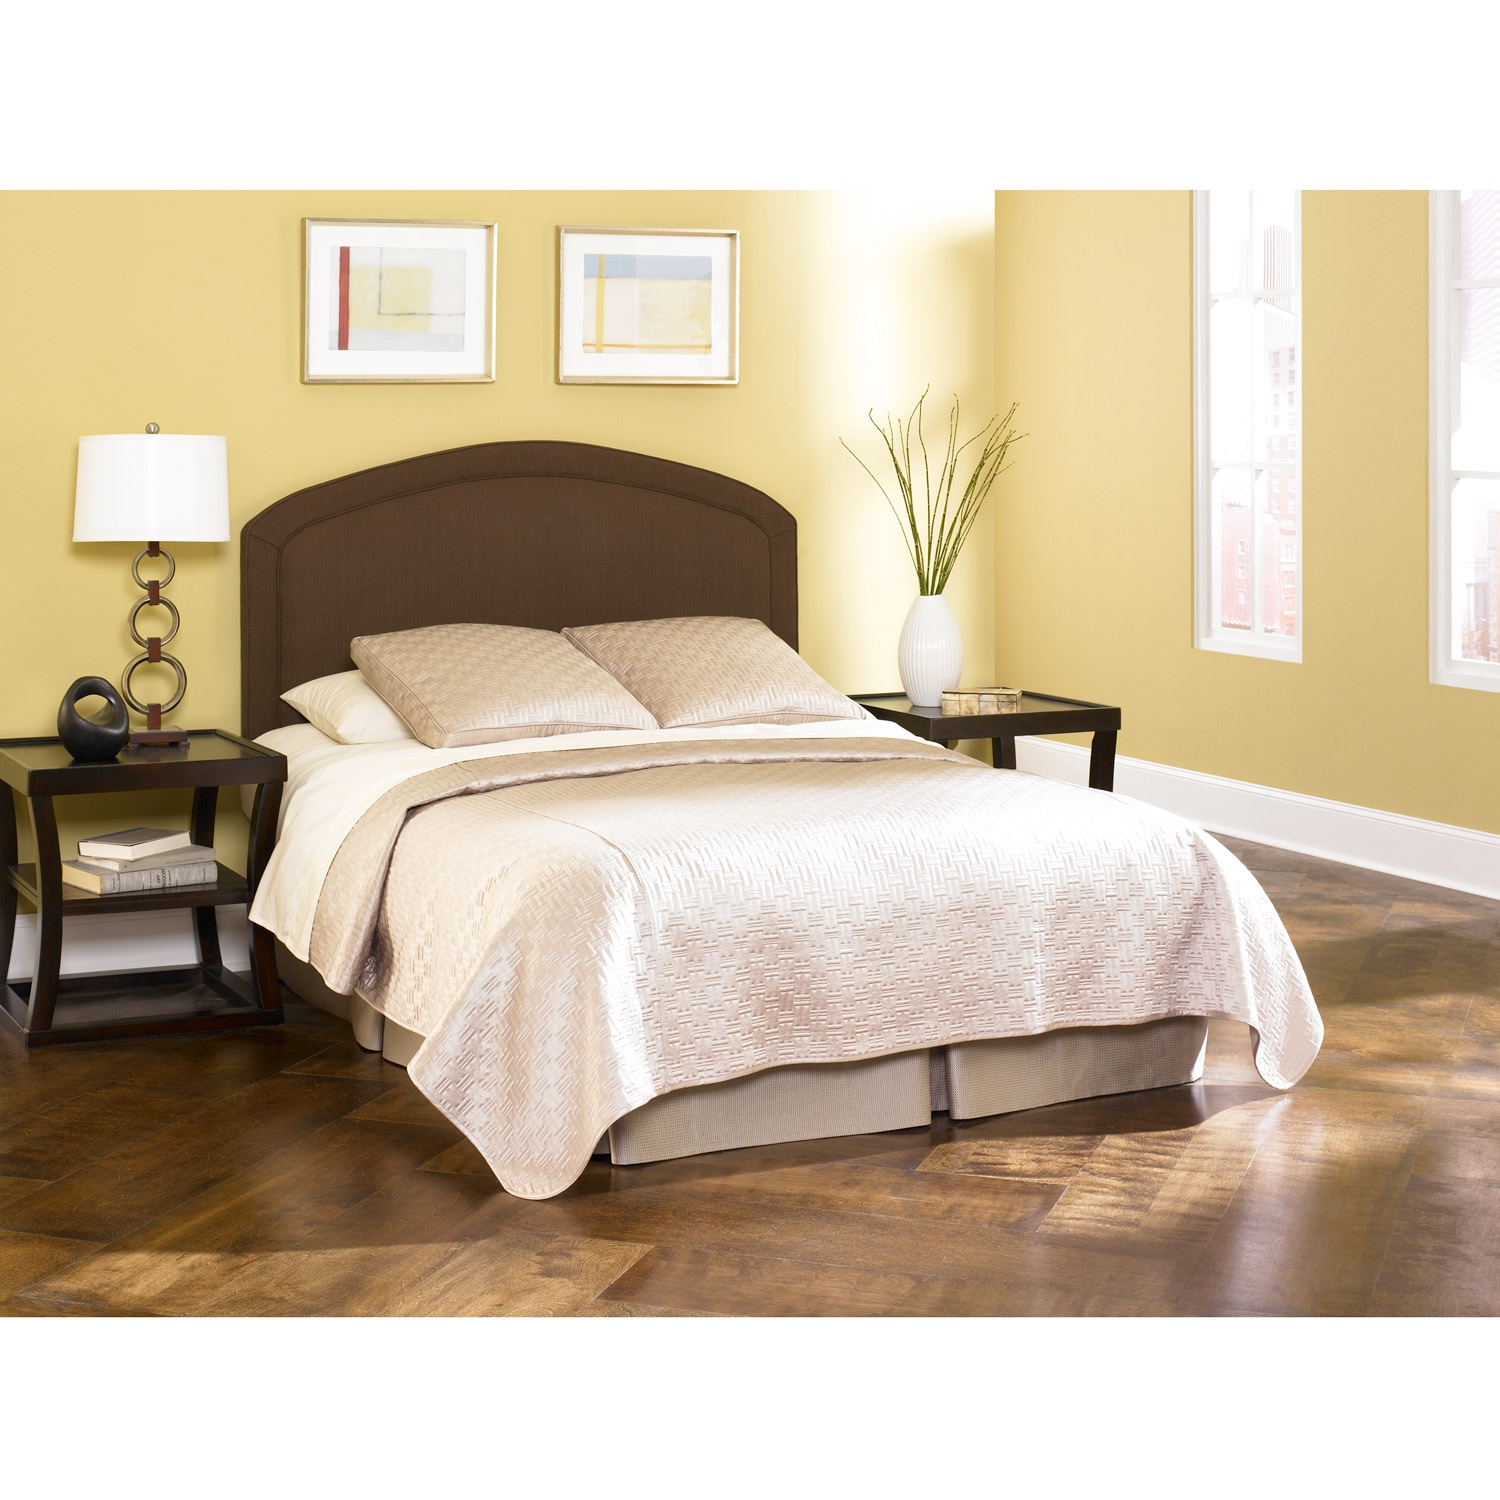 Cherbourg Deep Chocolate Upholstered King Cal King Size